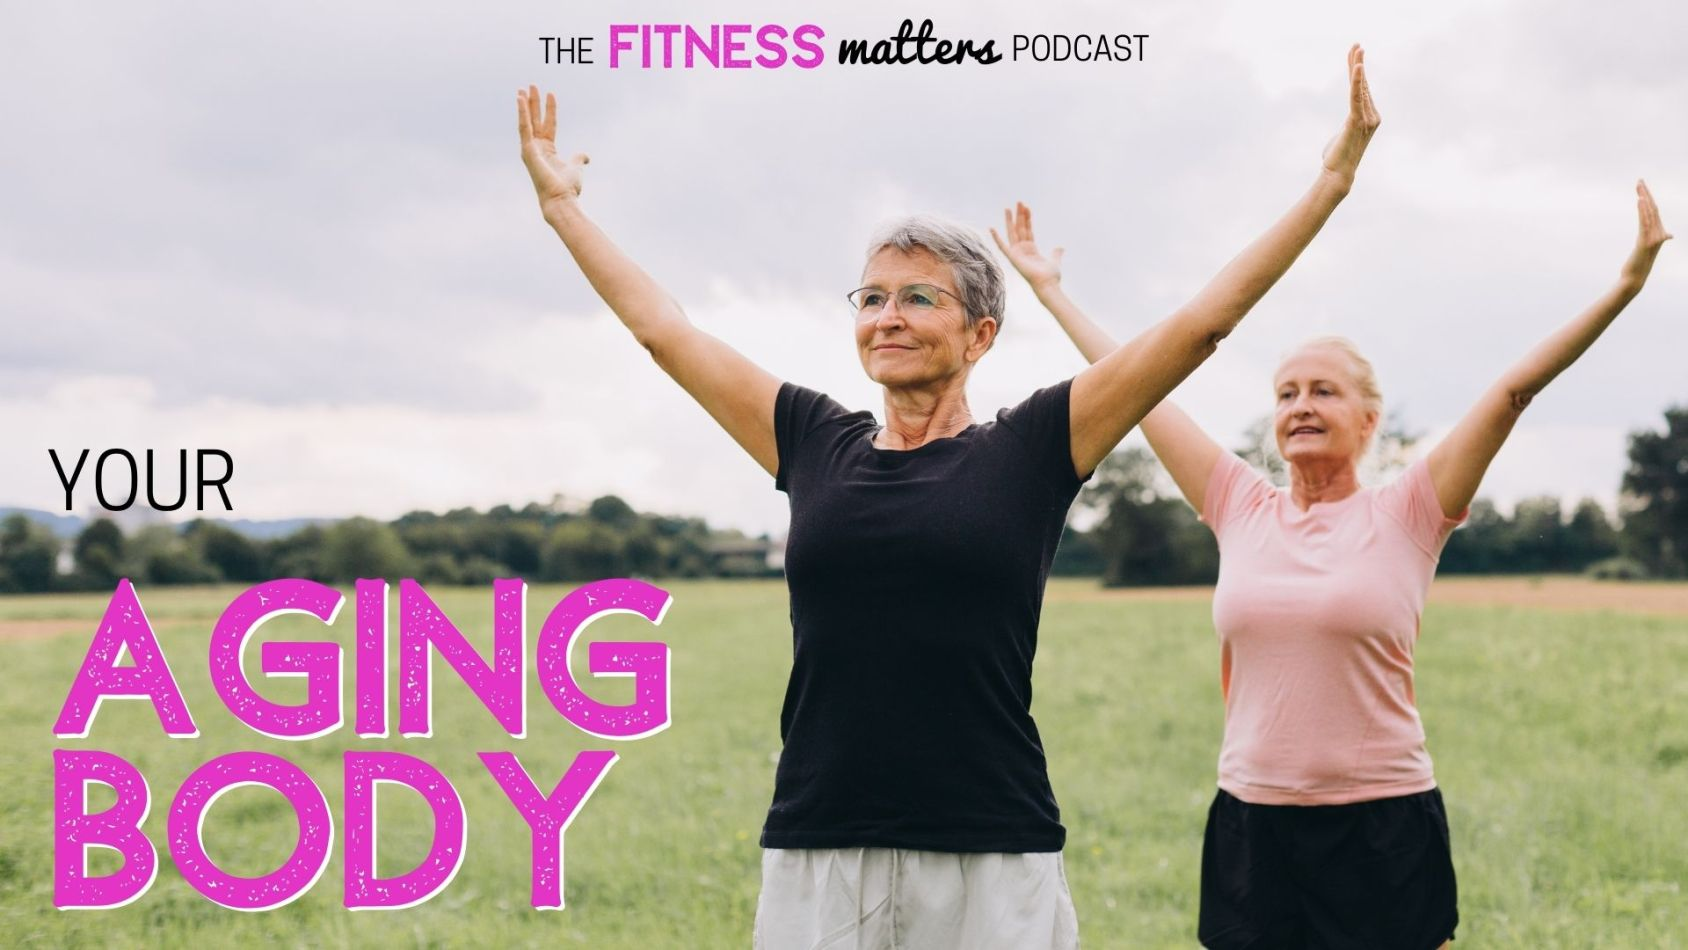 Ep. 096: Your AGING BODY ???? The Fitness Matters Podcast